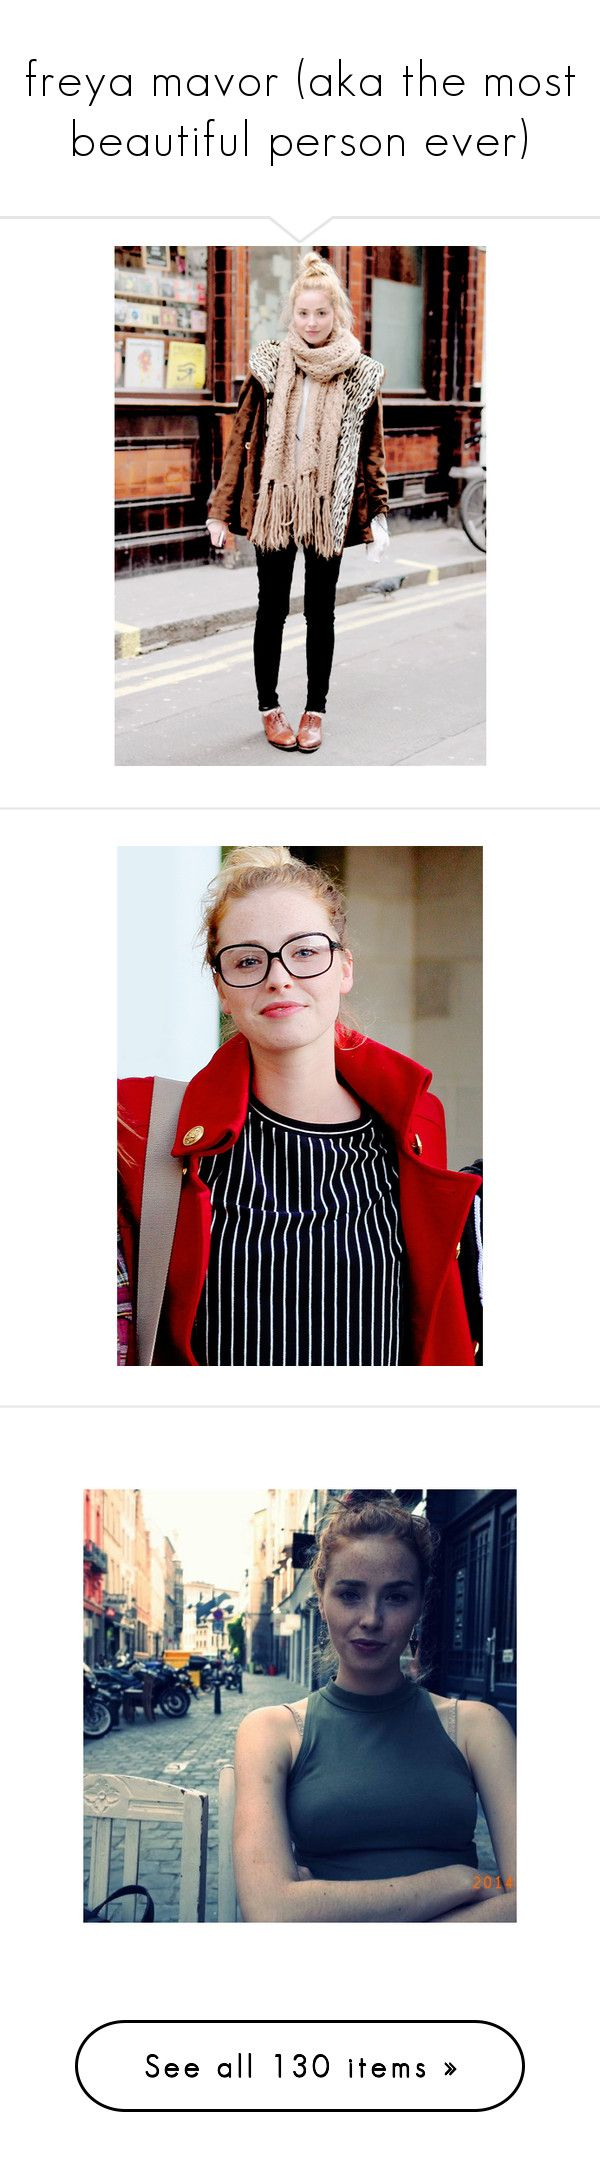 """""""freya mavor (aka the most beautiful person ever)"""" by surprise-sidney ❤ liked on Polyvore featuring skins, minimcguinness, freyamavor, freya mavor, freya, freya mavor., manip, mavor, people and faces"""